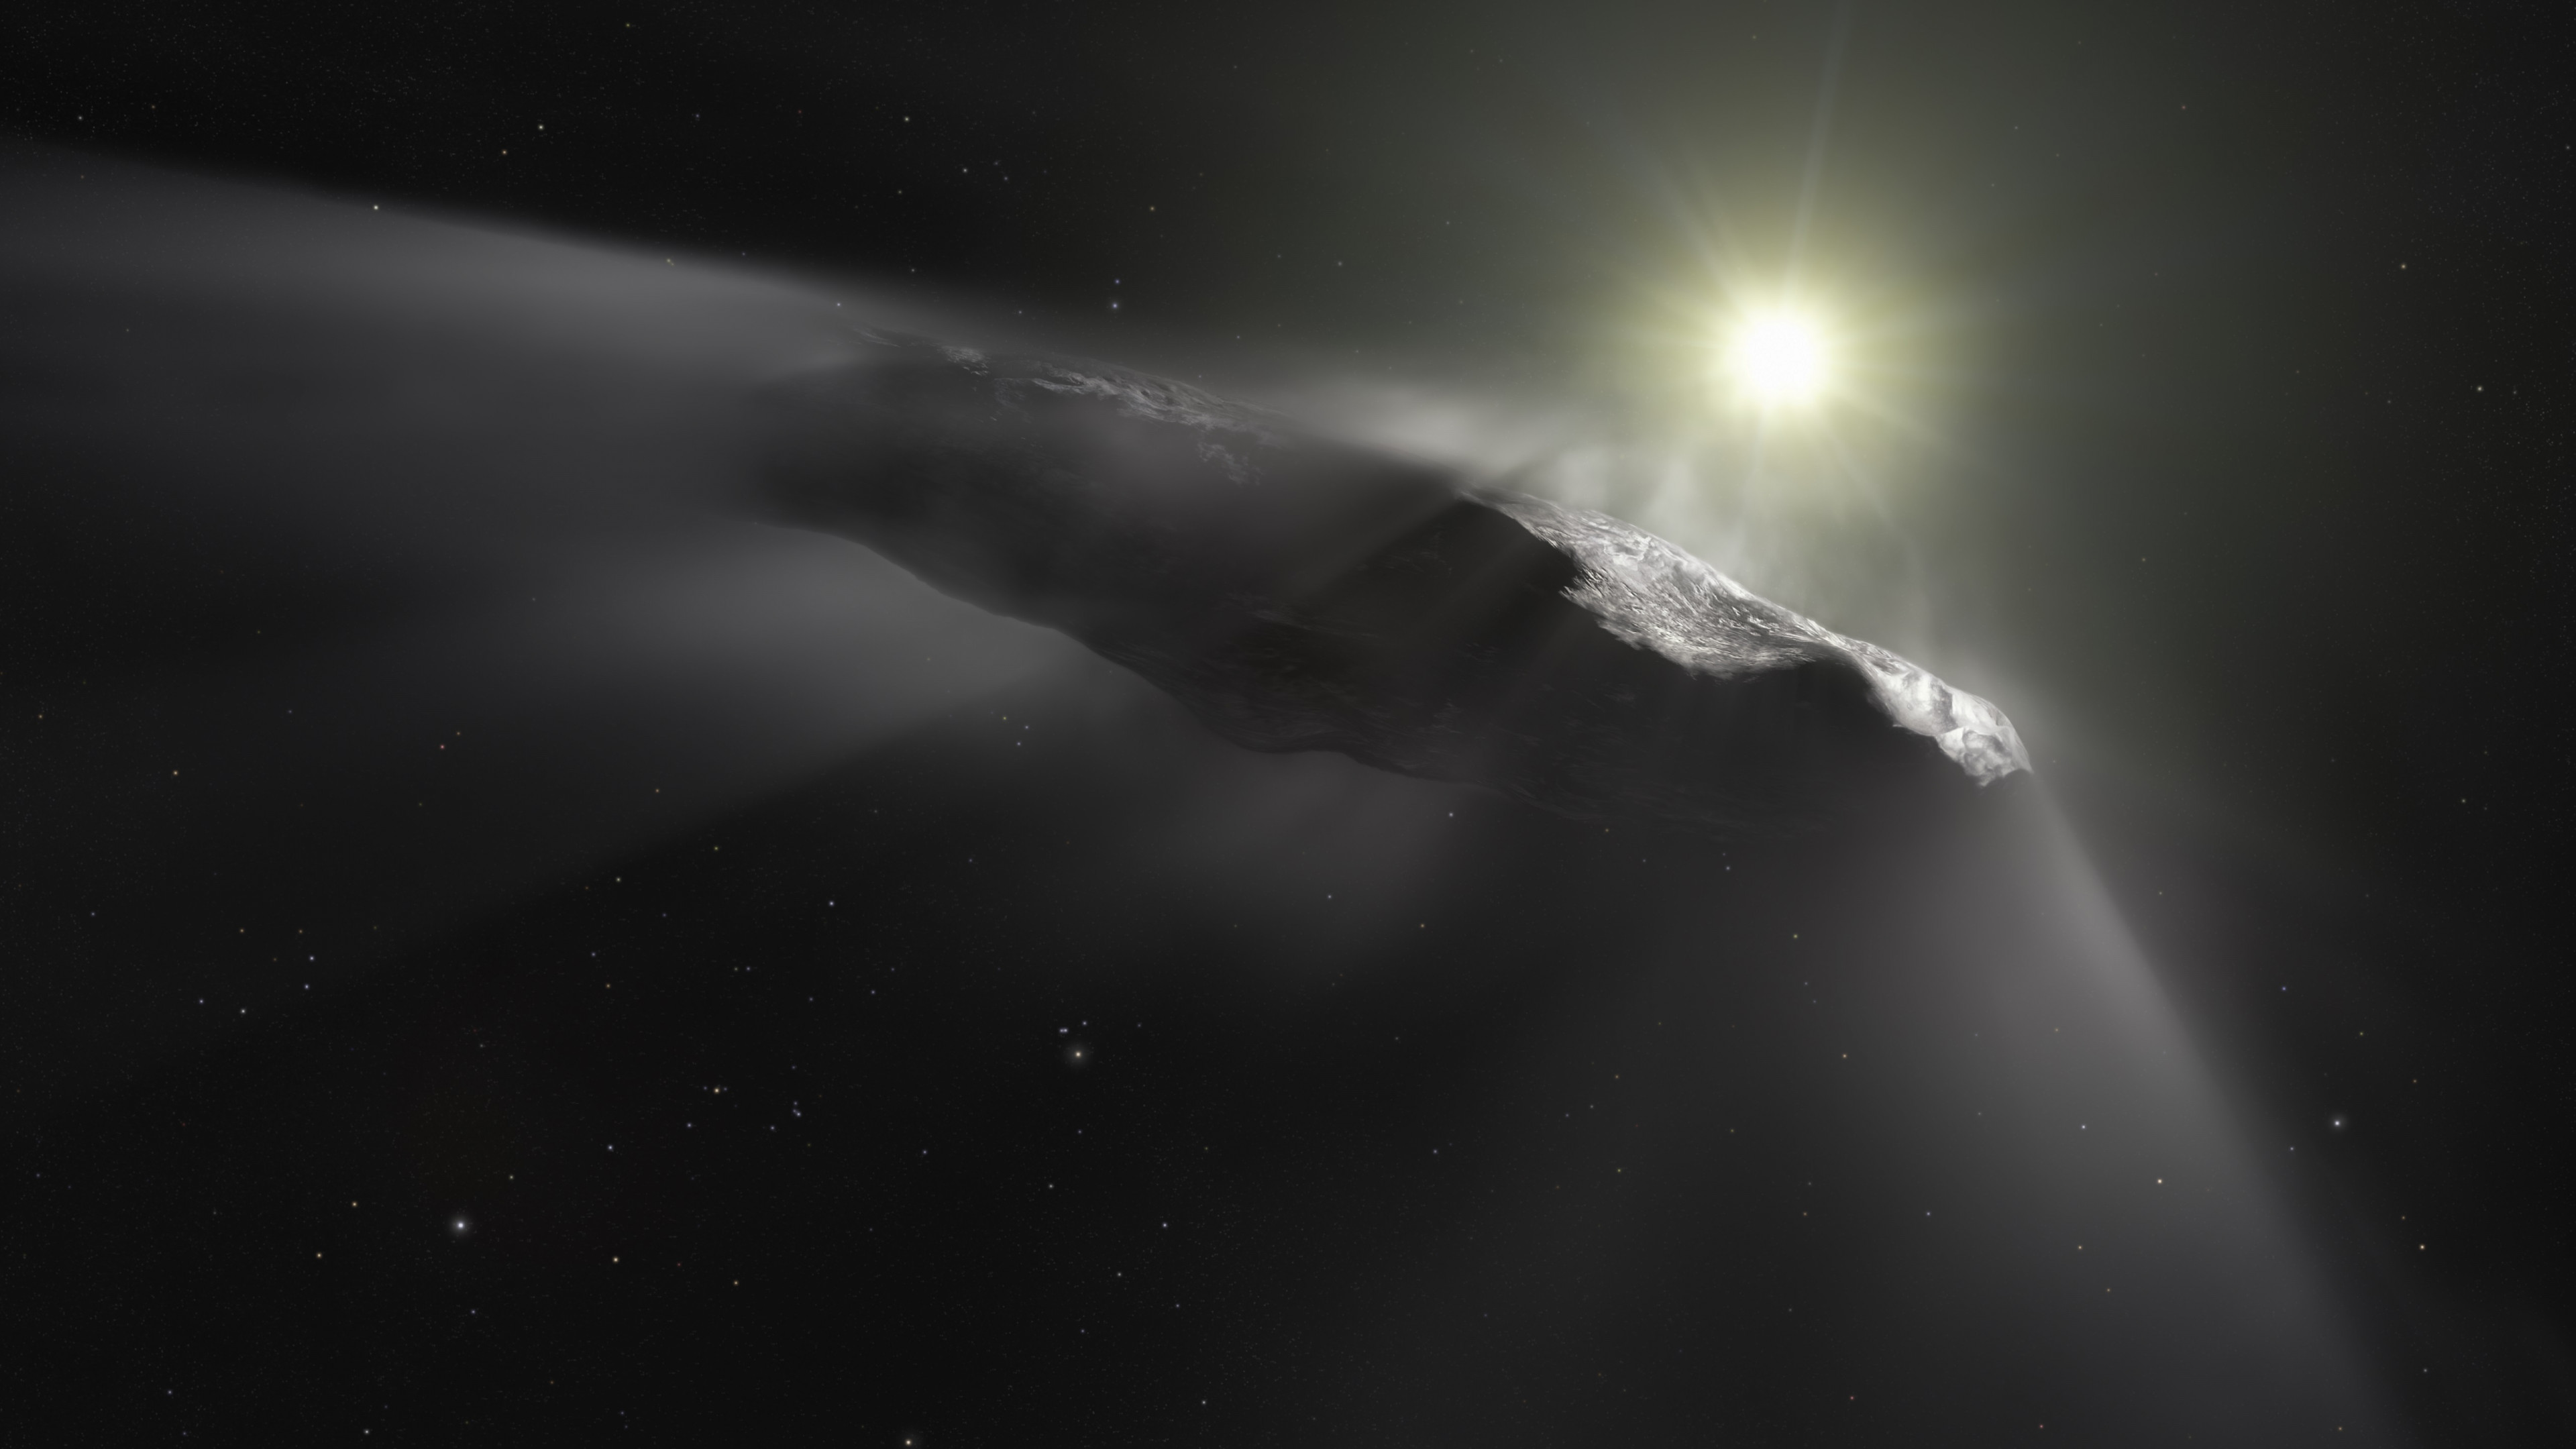 Oumuamua asteroid wallpaper 3840x2160